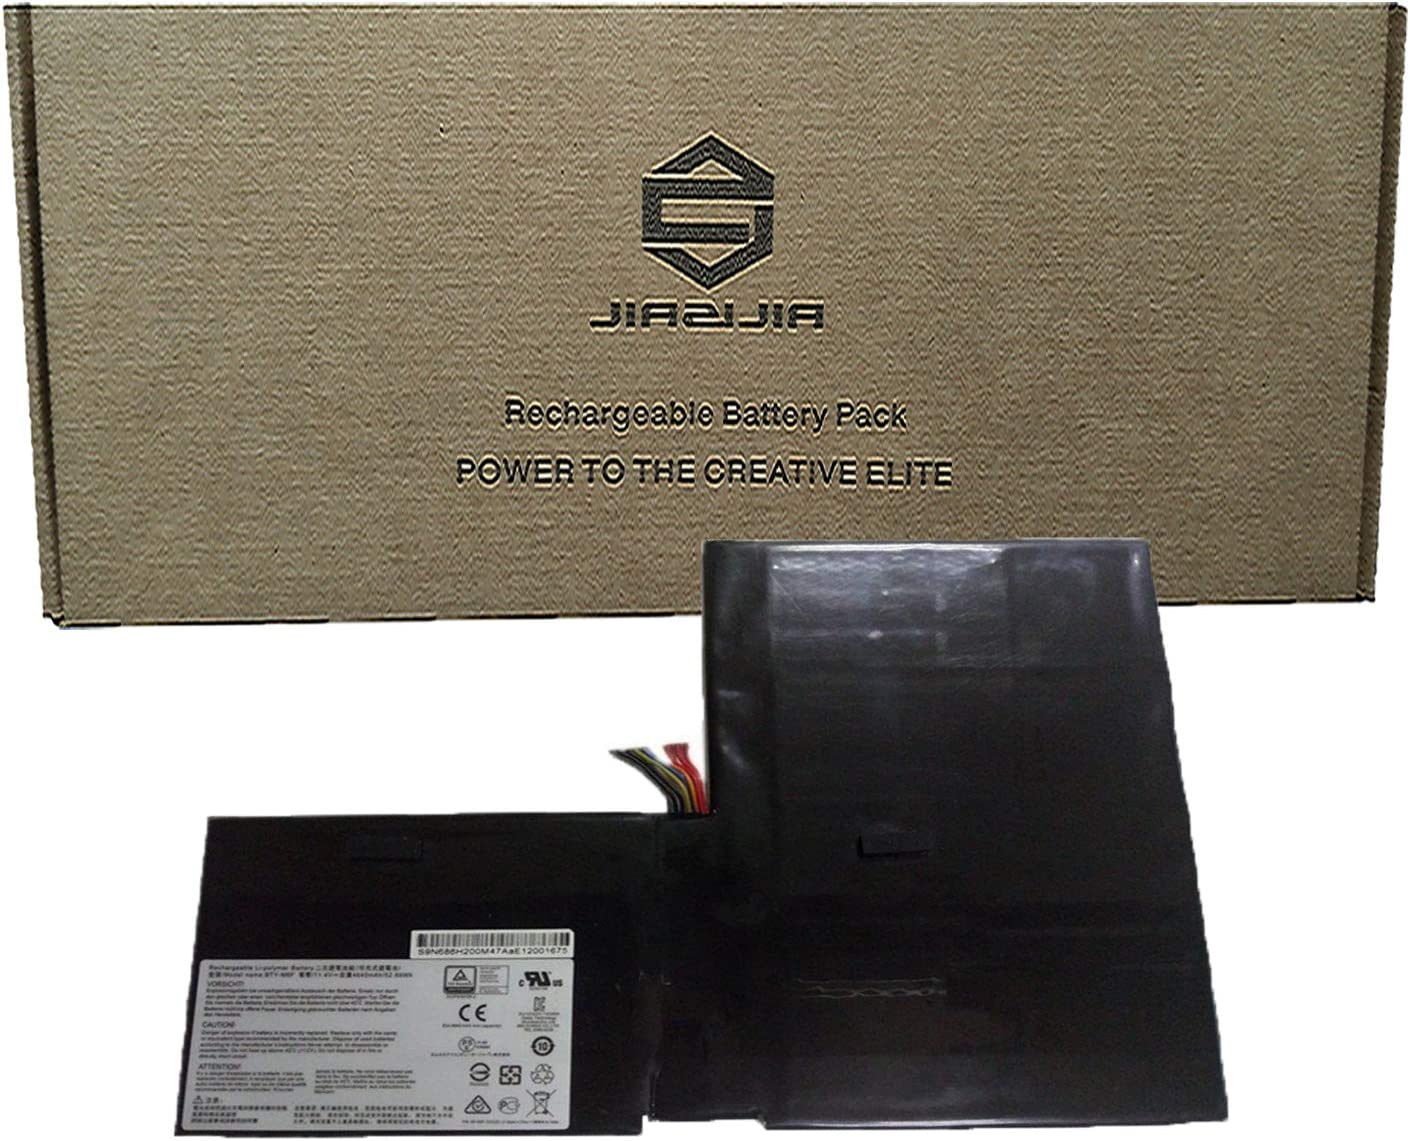 JIAZIJIA BTY-M6F Laptop Battery Replacement for MSI GS60 2PL 2QE 6QE 6QC MS-16H2 PX60 Series Notebook 52.89Wh